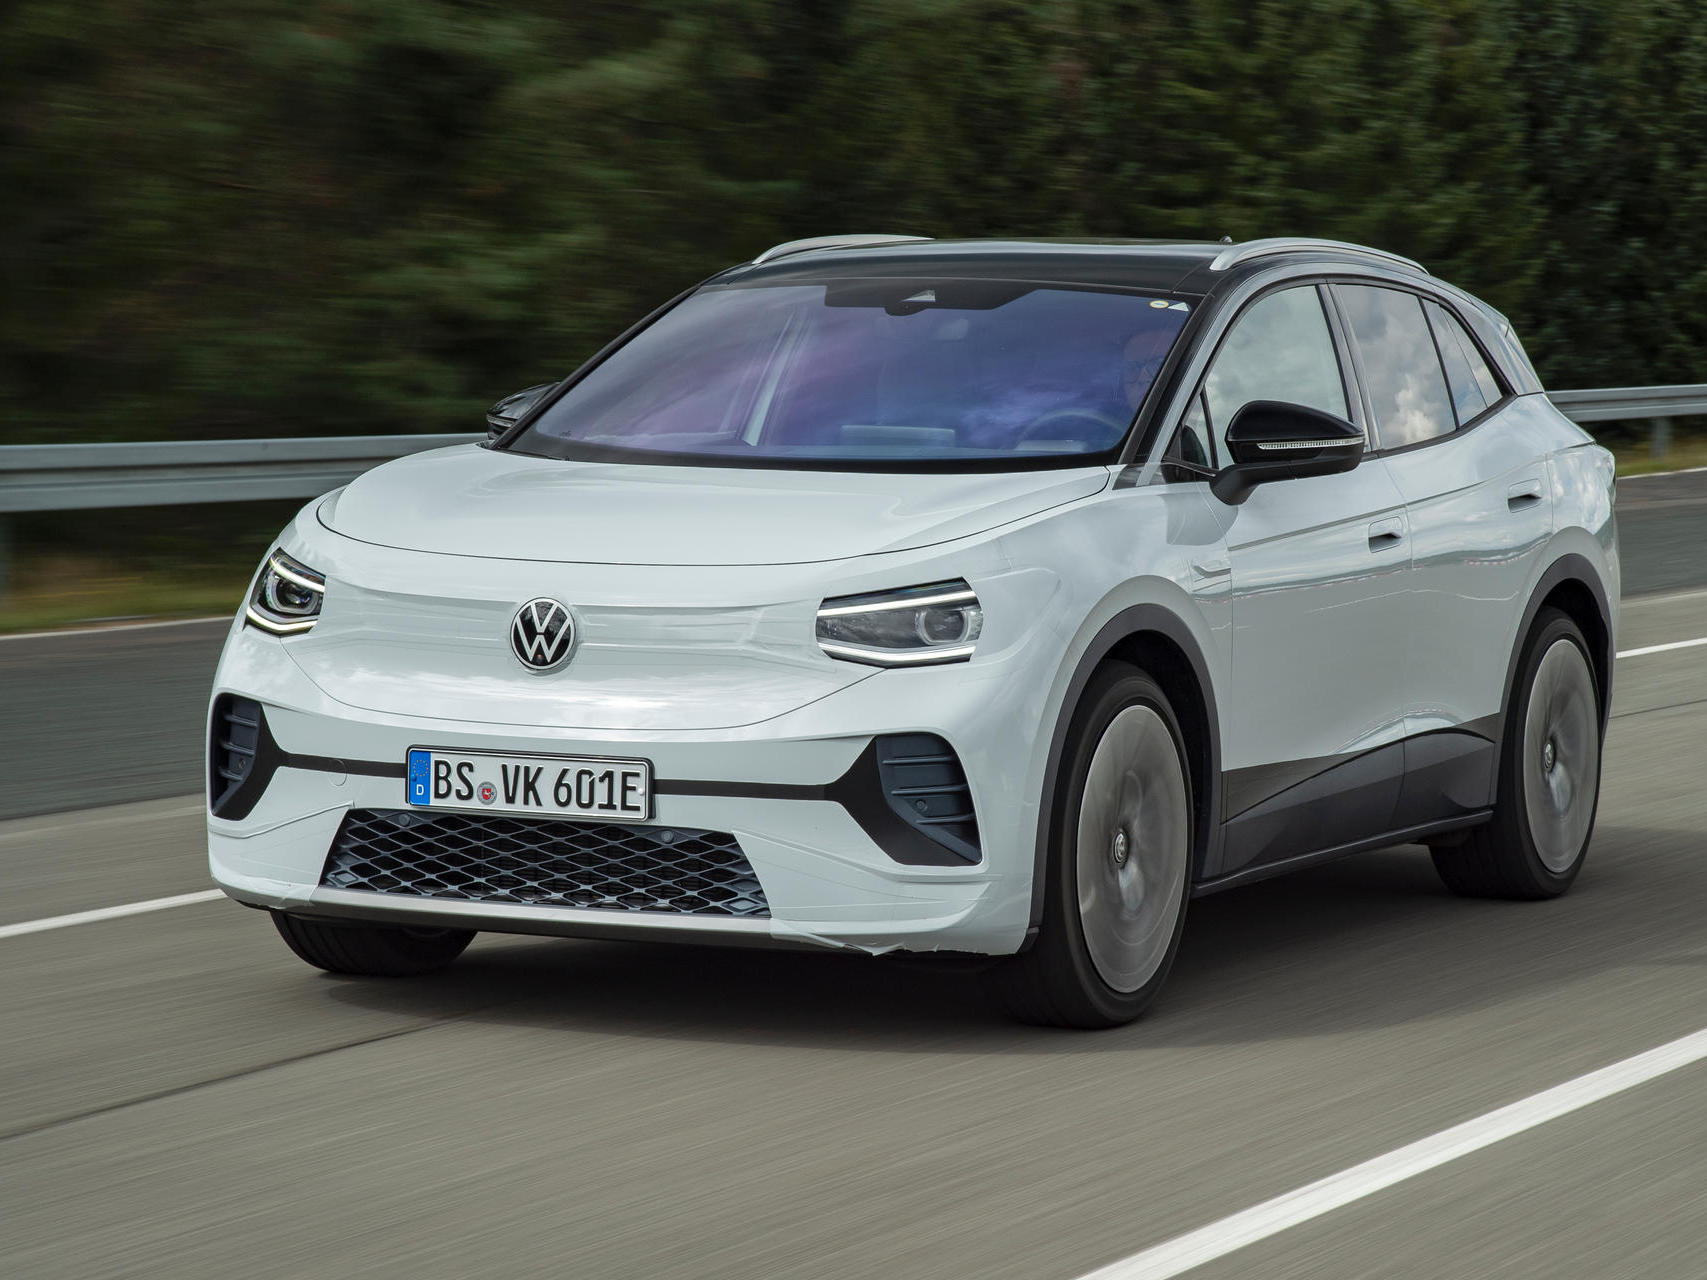 Mere days before the premiere of its first production SUV running on pure electric power, Volkswagen has disclosed the planned production numbers. Apparently, the company will be aiming to make 500,000 ID.4 units per year.